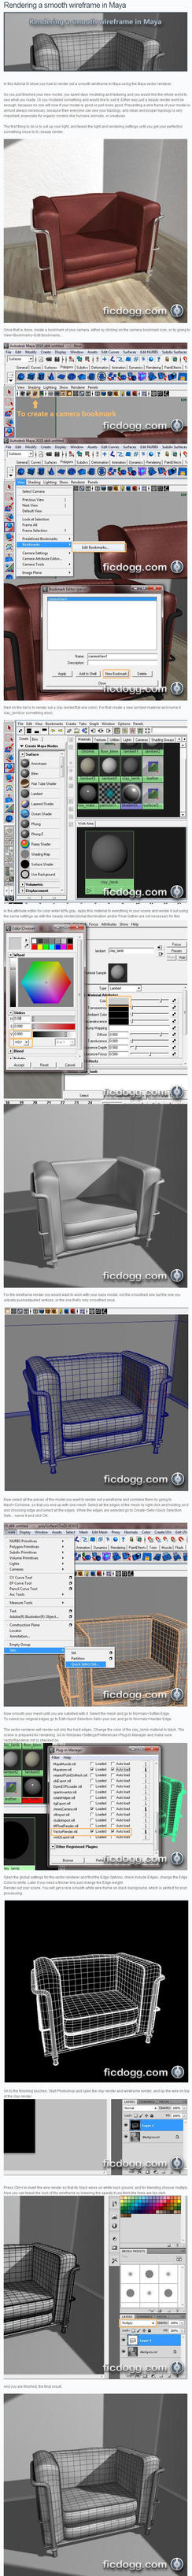 Rendering wireframe in Maya by ficdogg